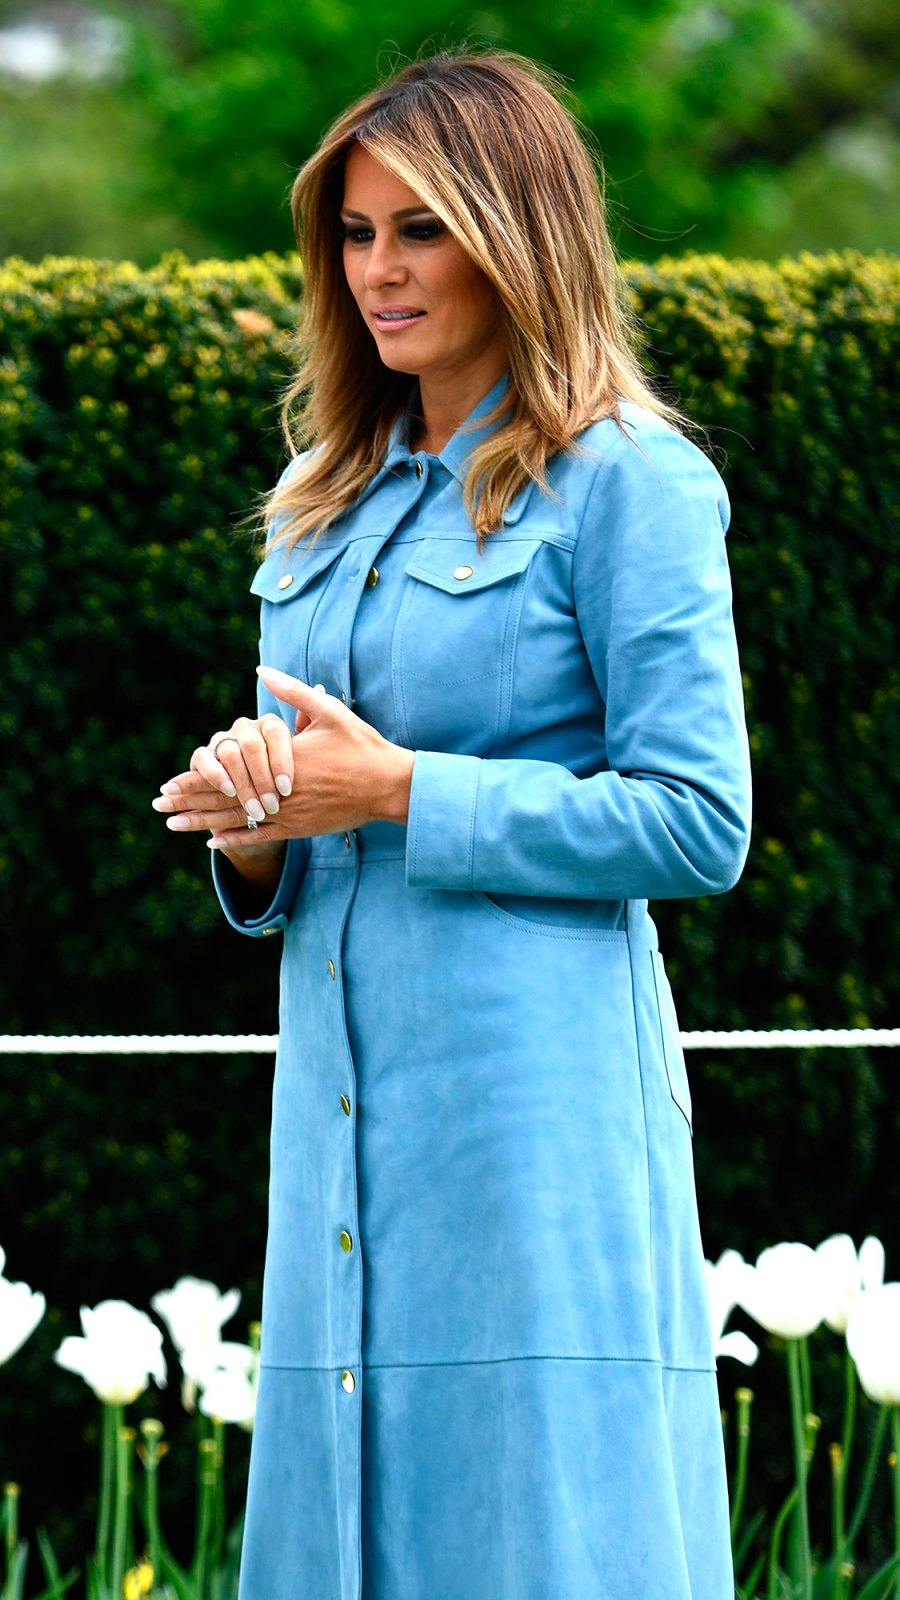 Melania Trump Heads to the Easter Egg Roll in a $5,000 Michael Kors Dress